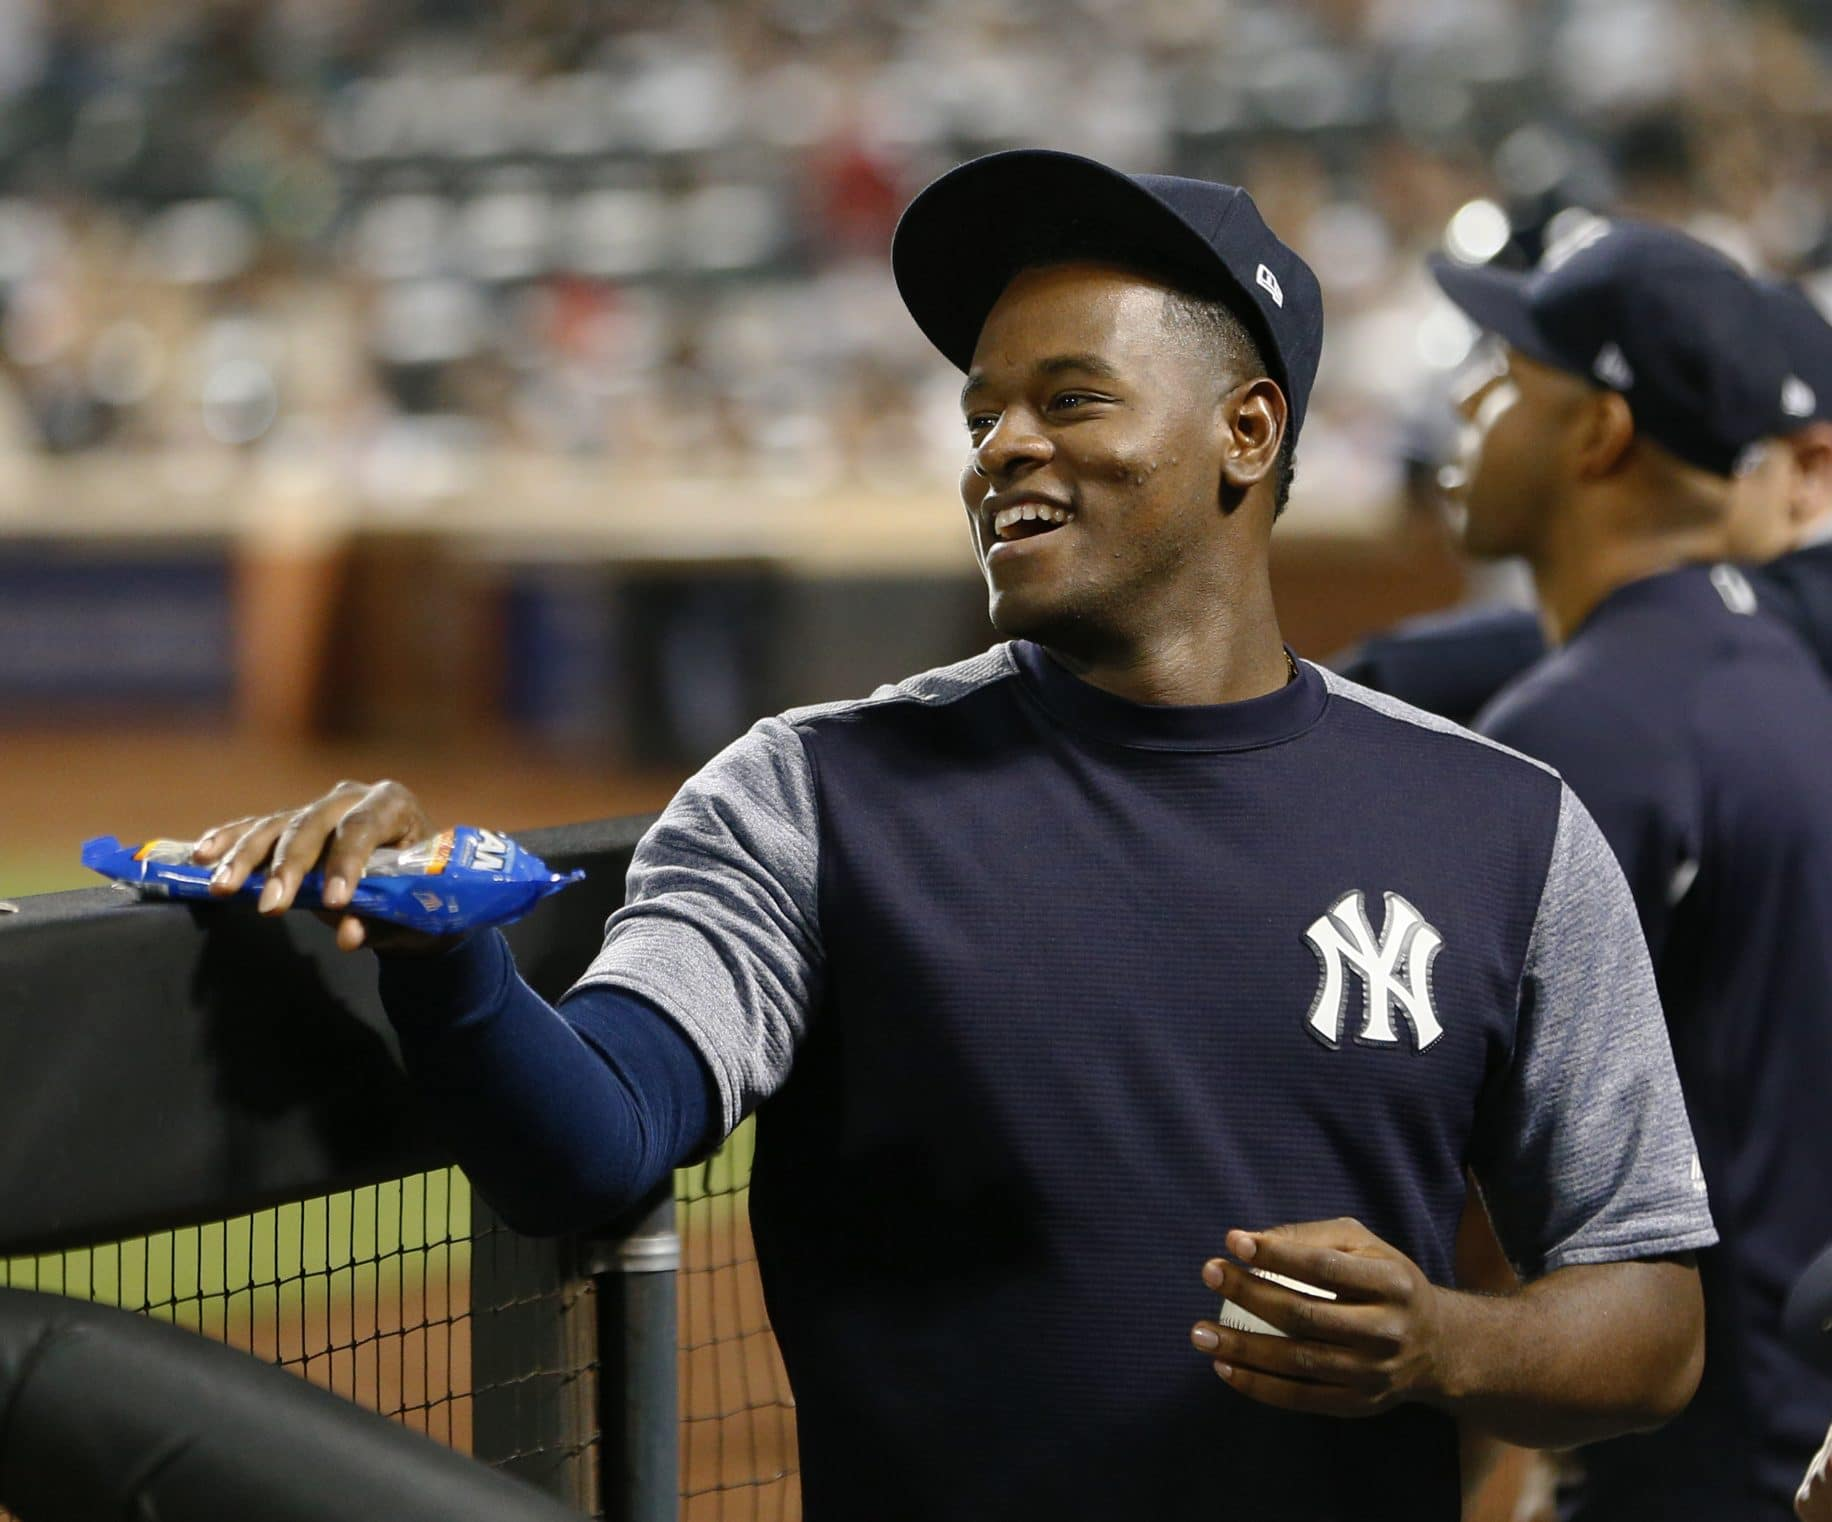 3 Reasons For Expanding the MLB Wild Card Game 1